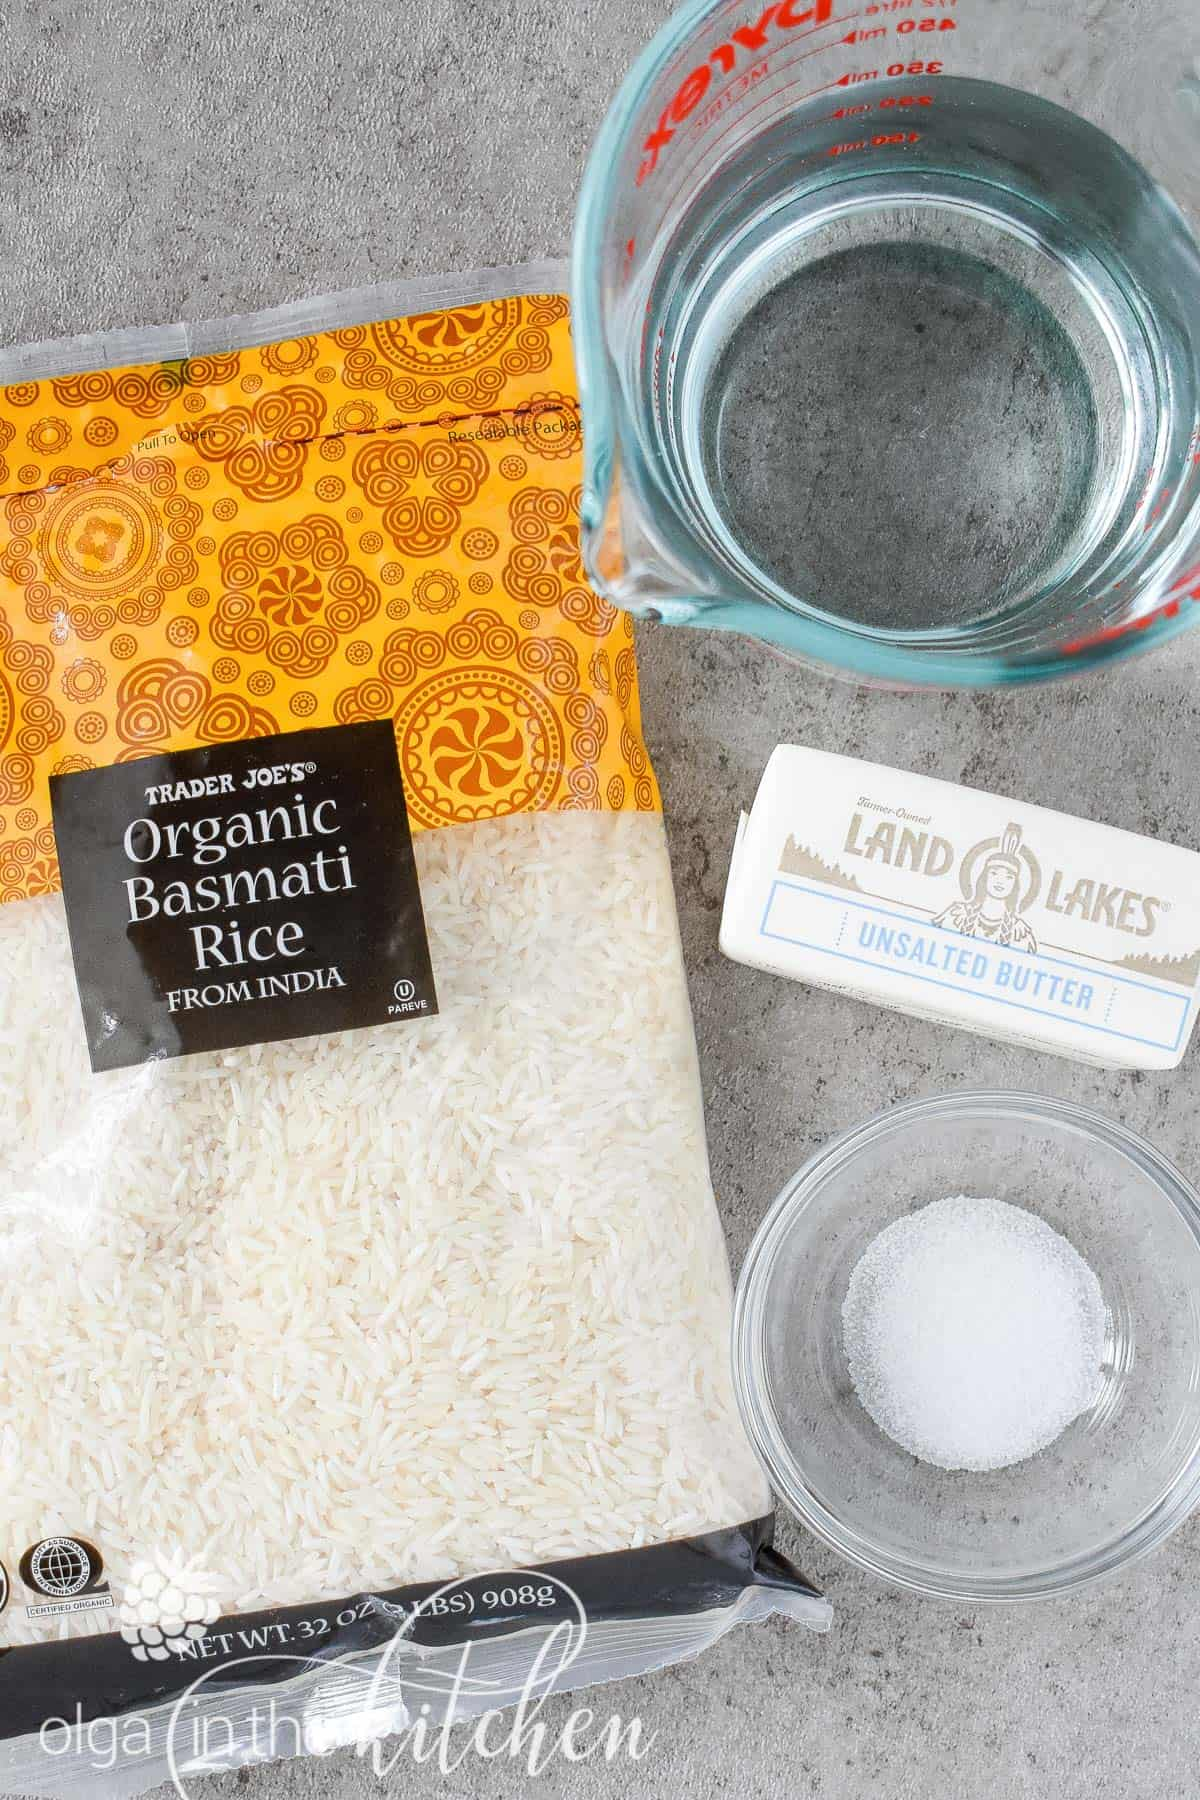 Learn how to cook perfect rice every time. This is our go-to simple, but reliable stove-top method of How to Cook White Rice to achieve perfectly tender and fluffy texture every time. #howtocookrice #whiterice #longgrainrice #basmatirice #jasminerice #olgainthekitchen #rice #sidedish #howto